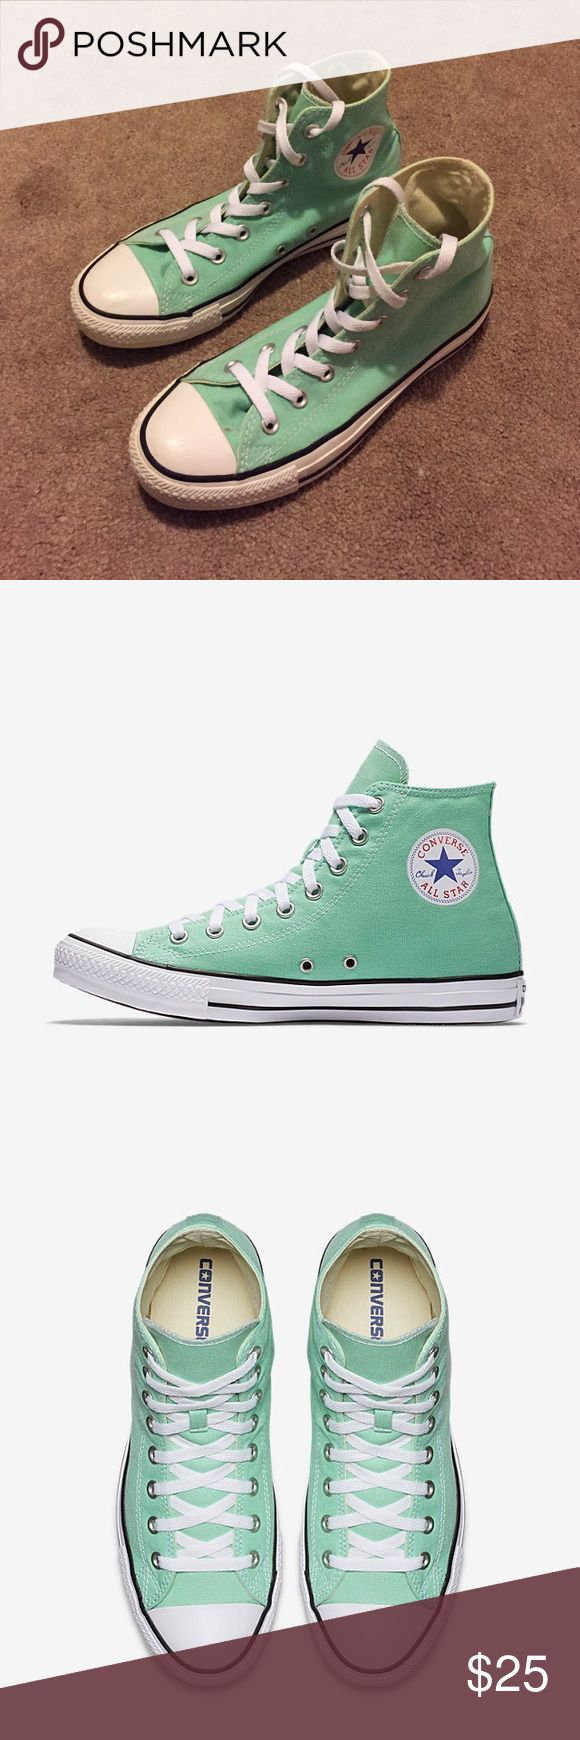 """Converse High Tops •Size 8 •Great condition, barely worn •Color: """"Beach Glass"""" - green/turquoise Converse Shoes Sneakers"""